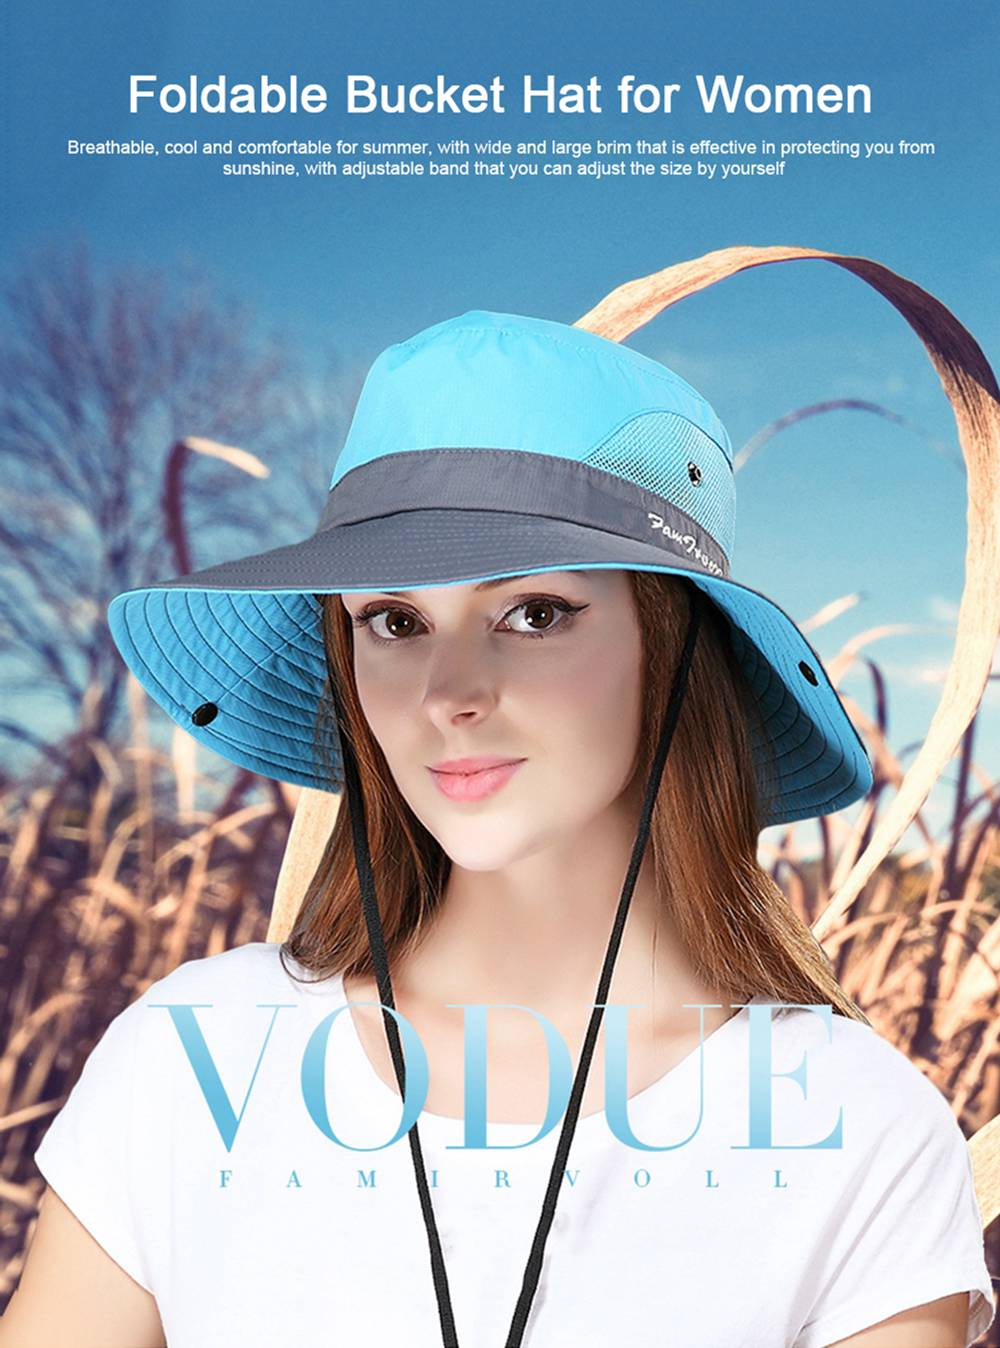 Foldable Bucket Hat for Women, Sunbonnet Sun Hat for Summer, Wind-proof Sun-proof for Outdoor Activities 0